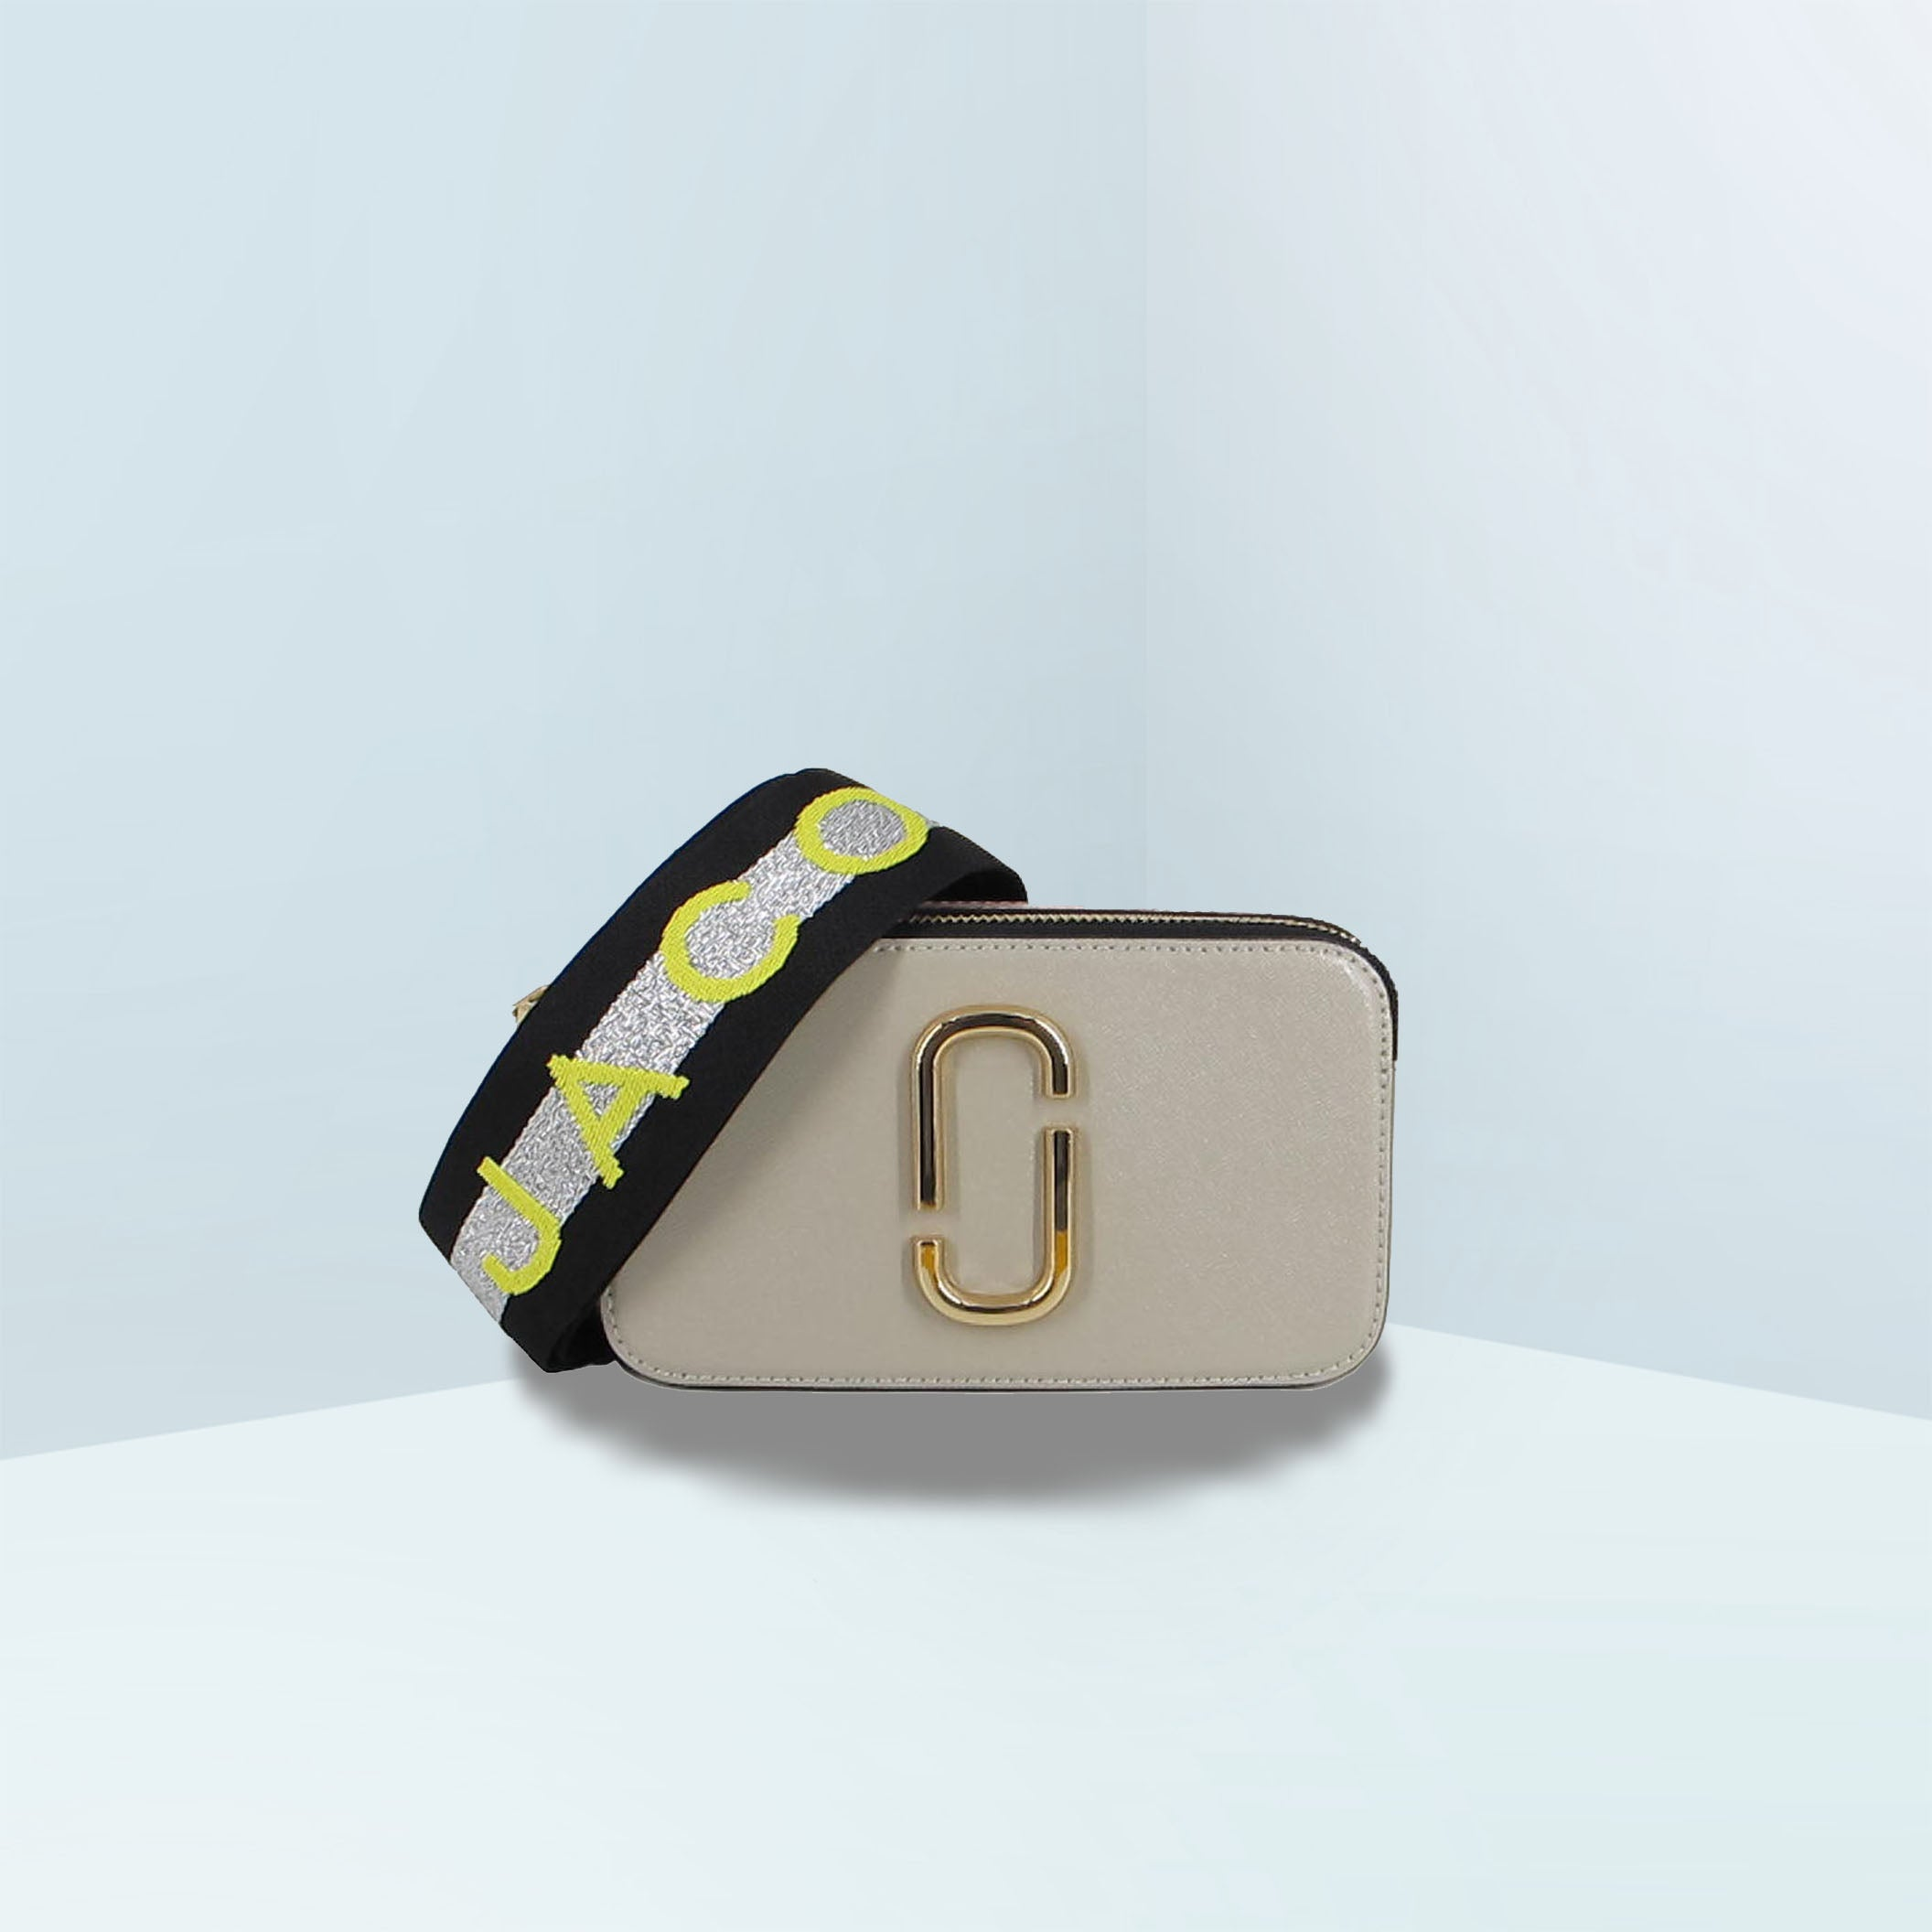 Small Snapshot Camera Bag